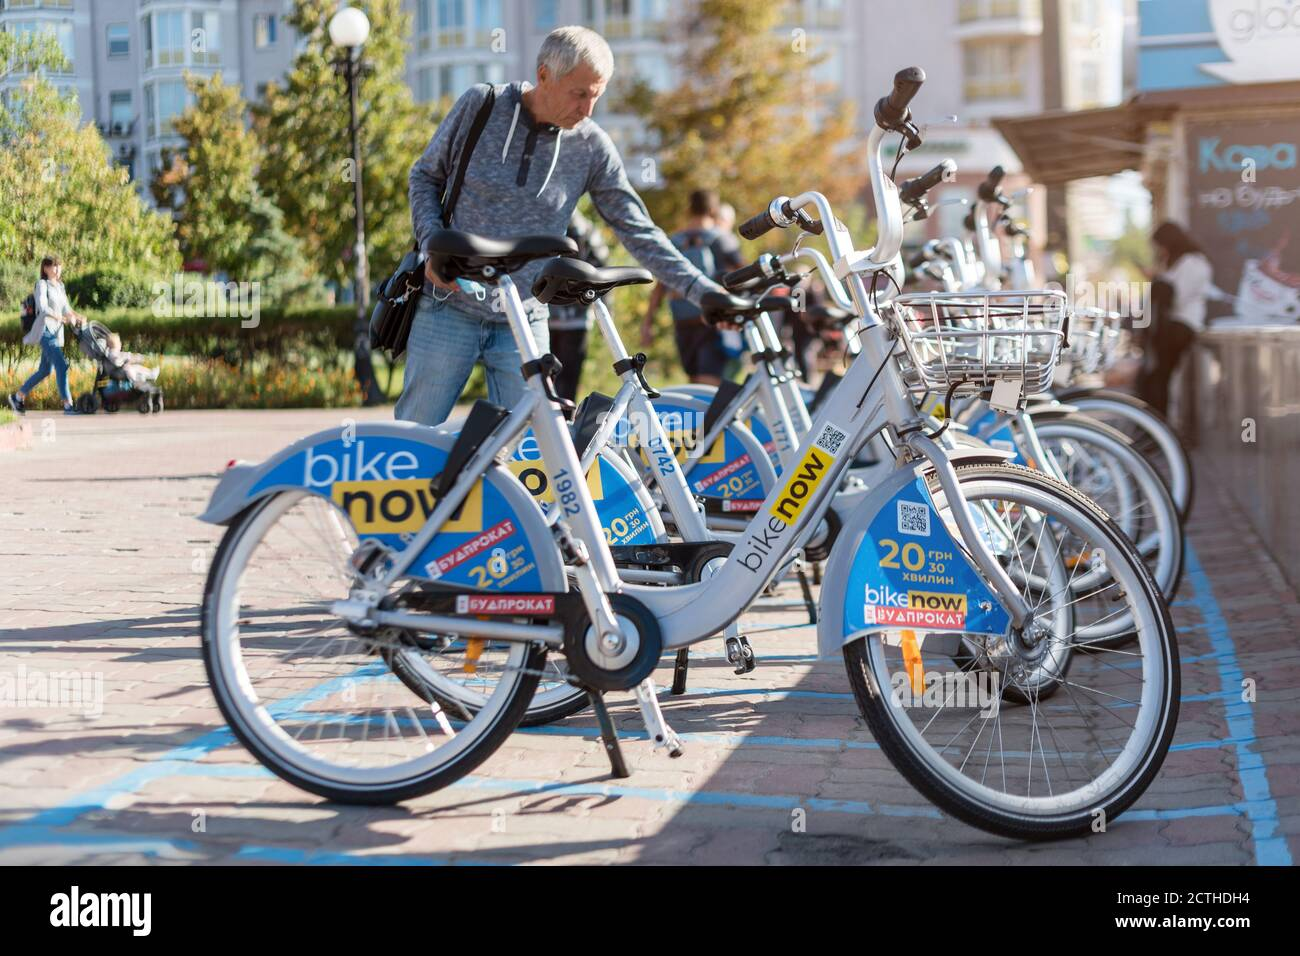 Kyiv, Ukraine - September 09, 2020: Rental bicycles of company Bike now. Ukrainian bike rental on special parking spaces. Bicycle-sharing system Stock Photo